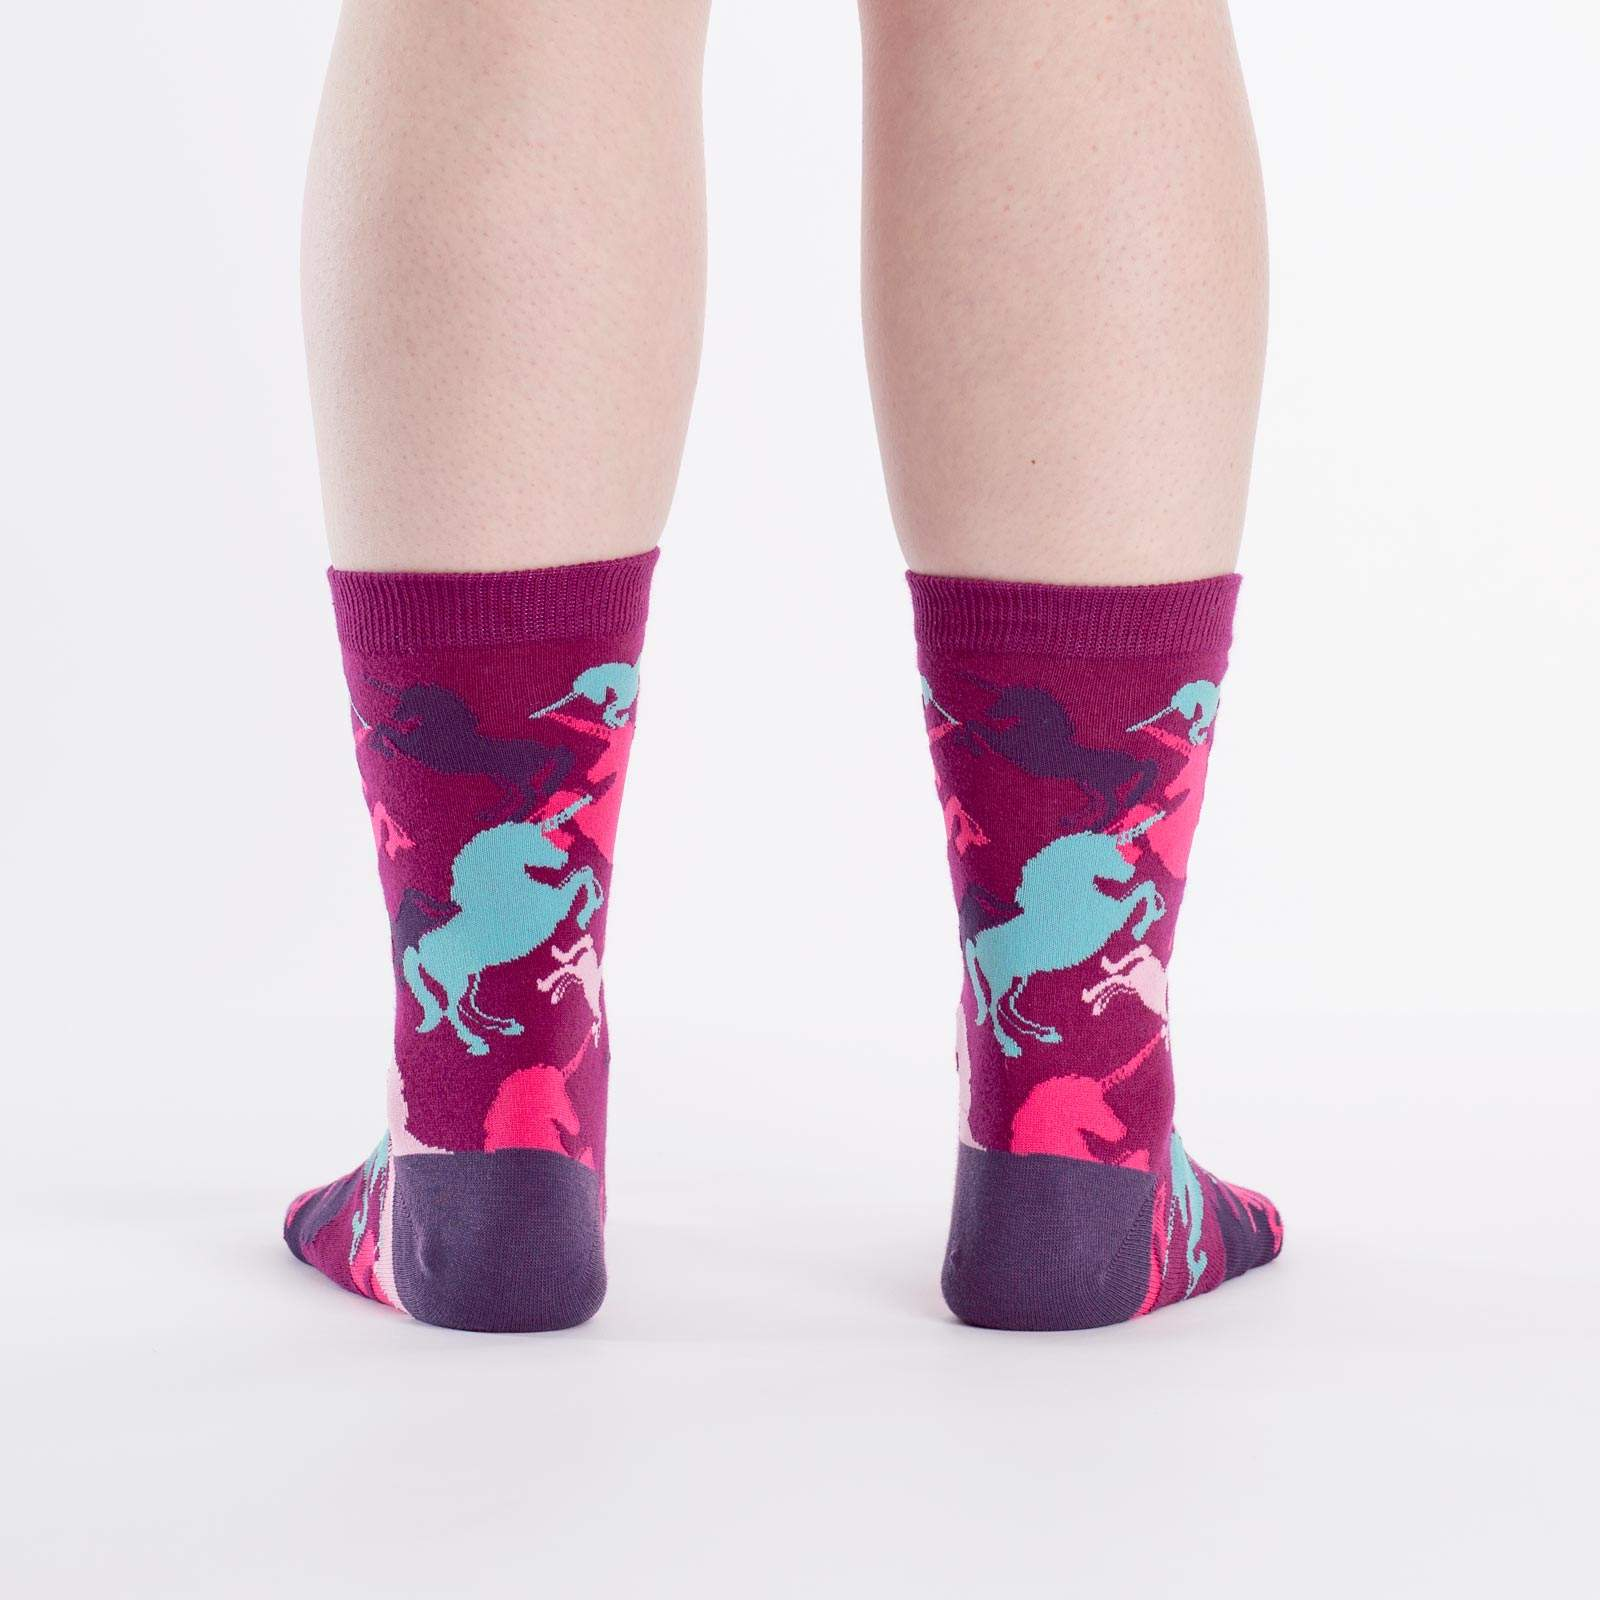 Calcetines-mythical-unicorns-sock-it-to-me-the-socks-closet